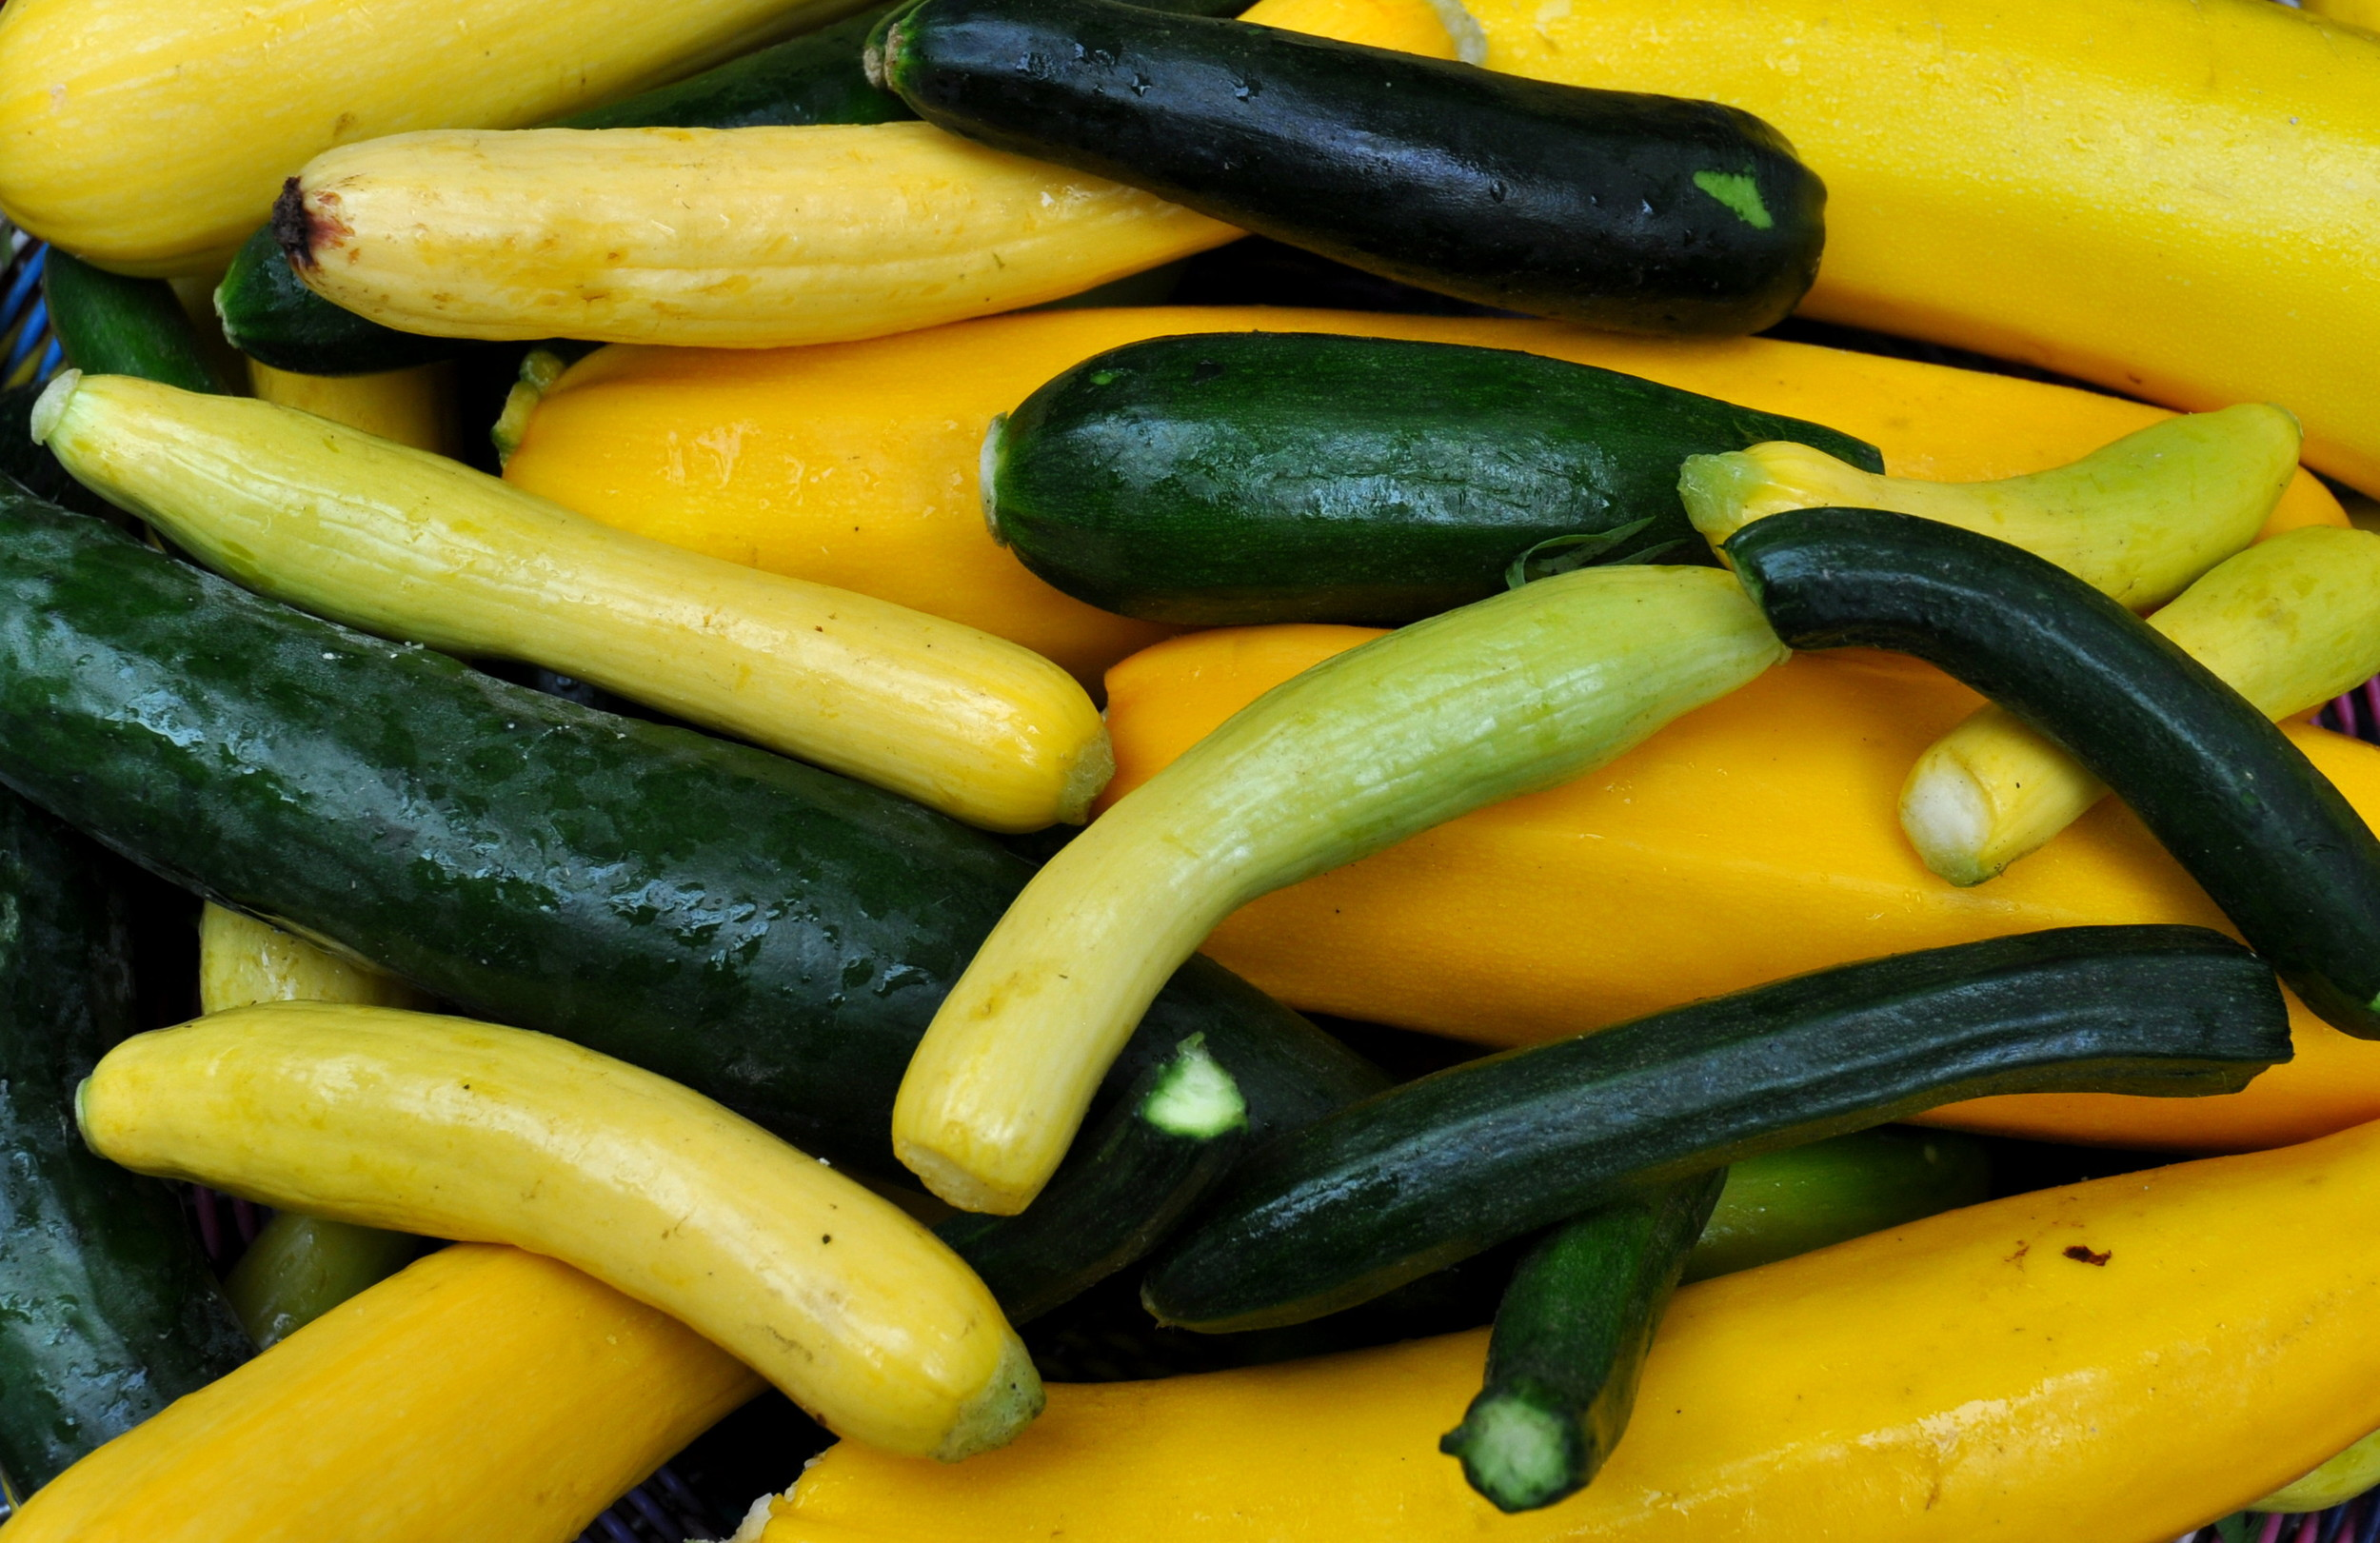 Zucchini from Colinwood Farm. Photo copyright 2014 by Zachary D. Lyons.